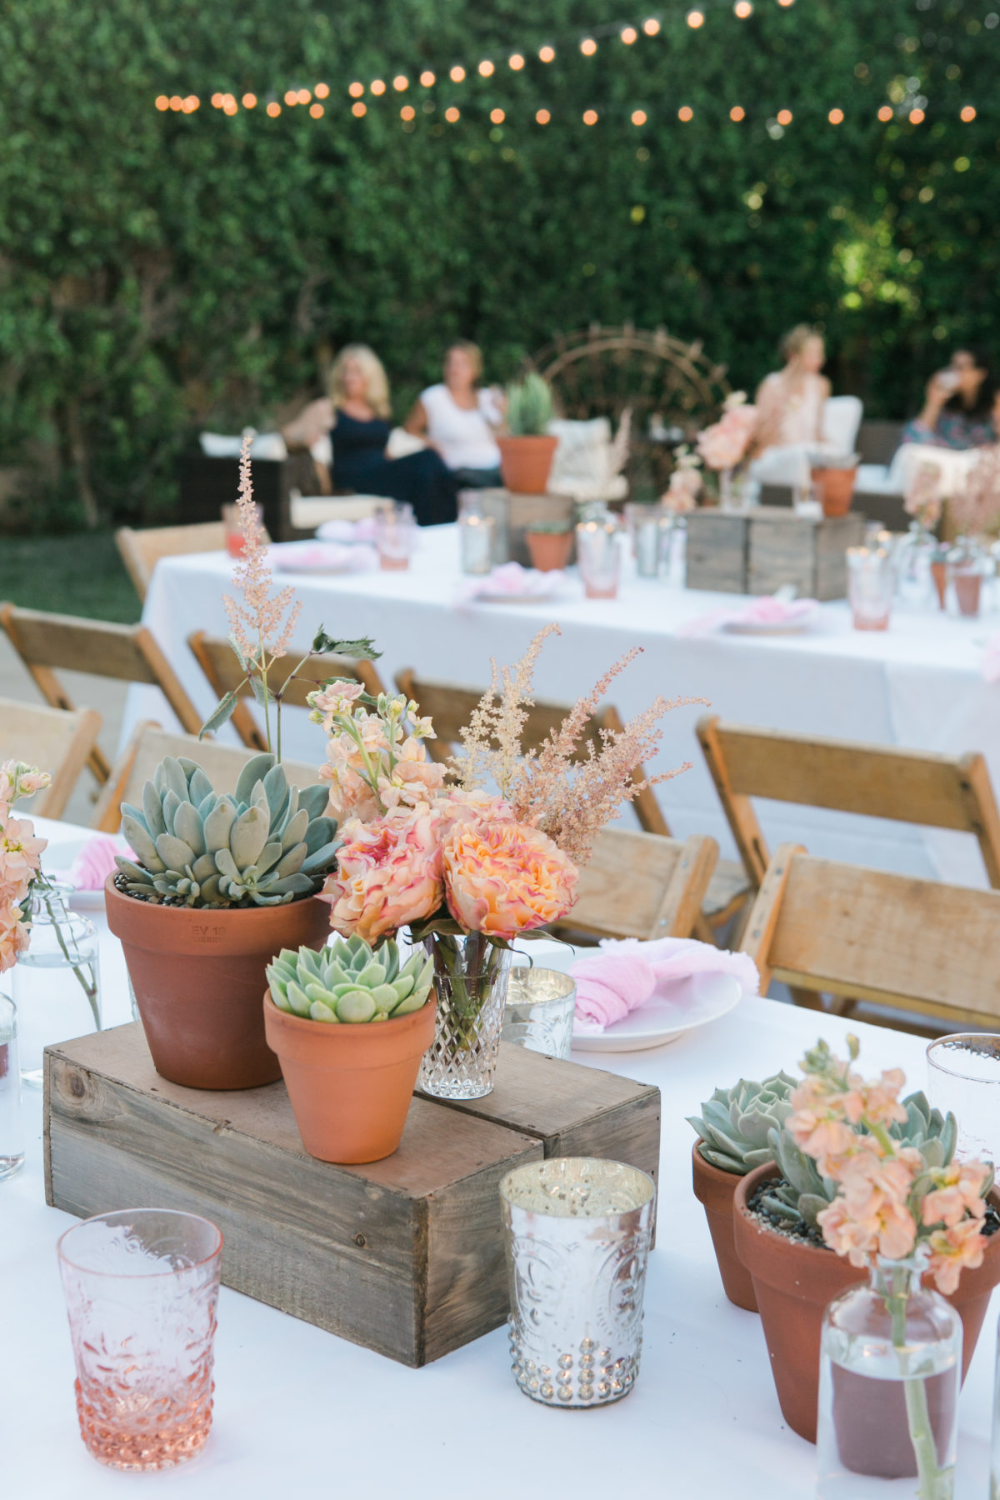 Girly California Baby Shower in 2020 (With images